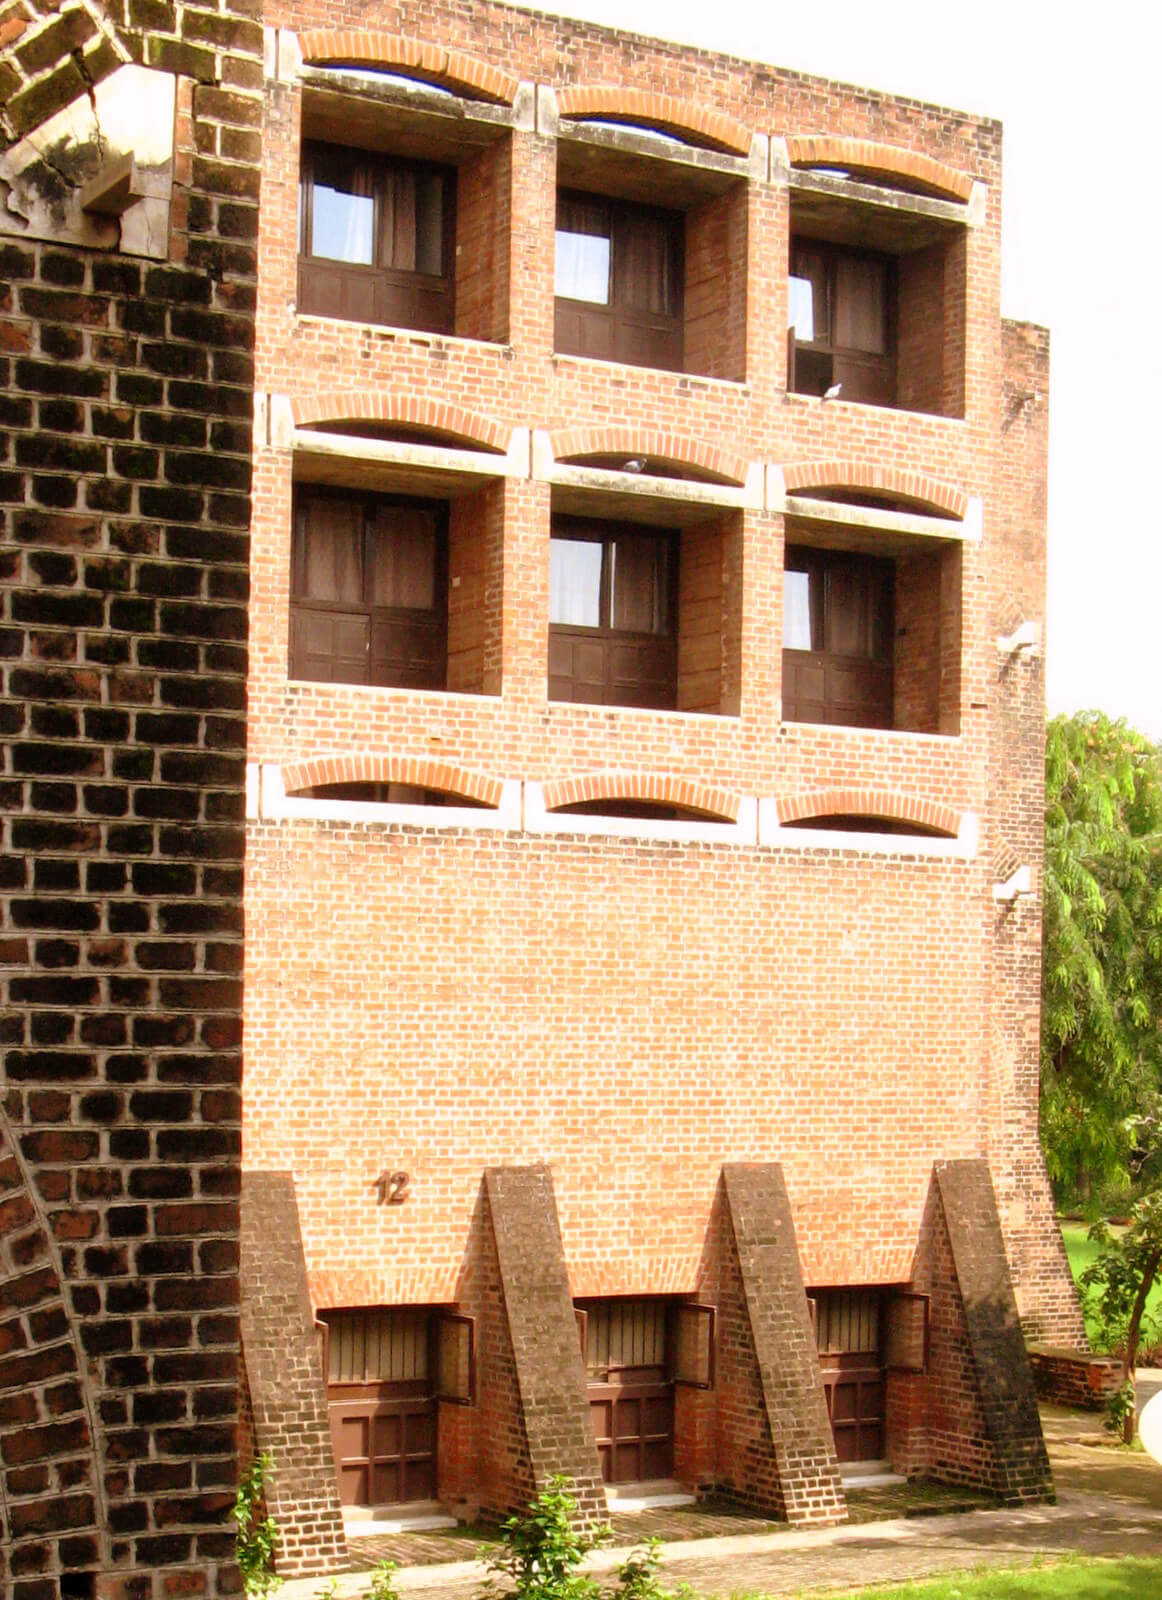 The dormitories at the IIM-A are a part of the whole community which try to create a city within a city | IIM Ahmedabad Demolition | Prof Jaimini Mehta | STIRworld